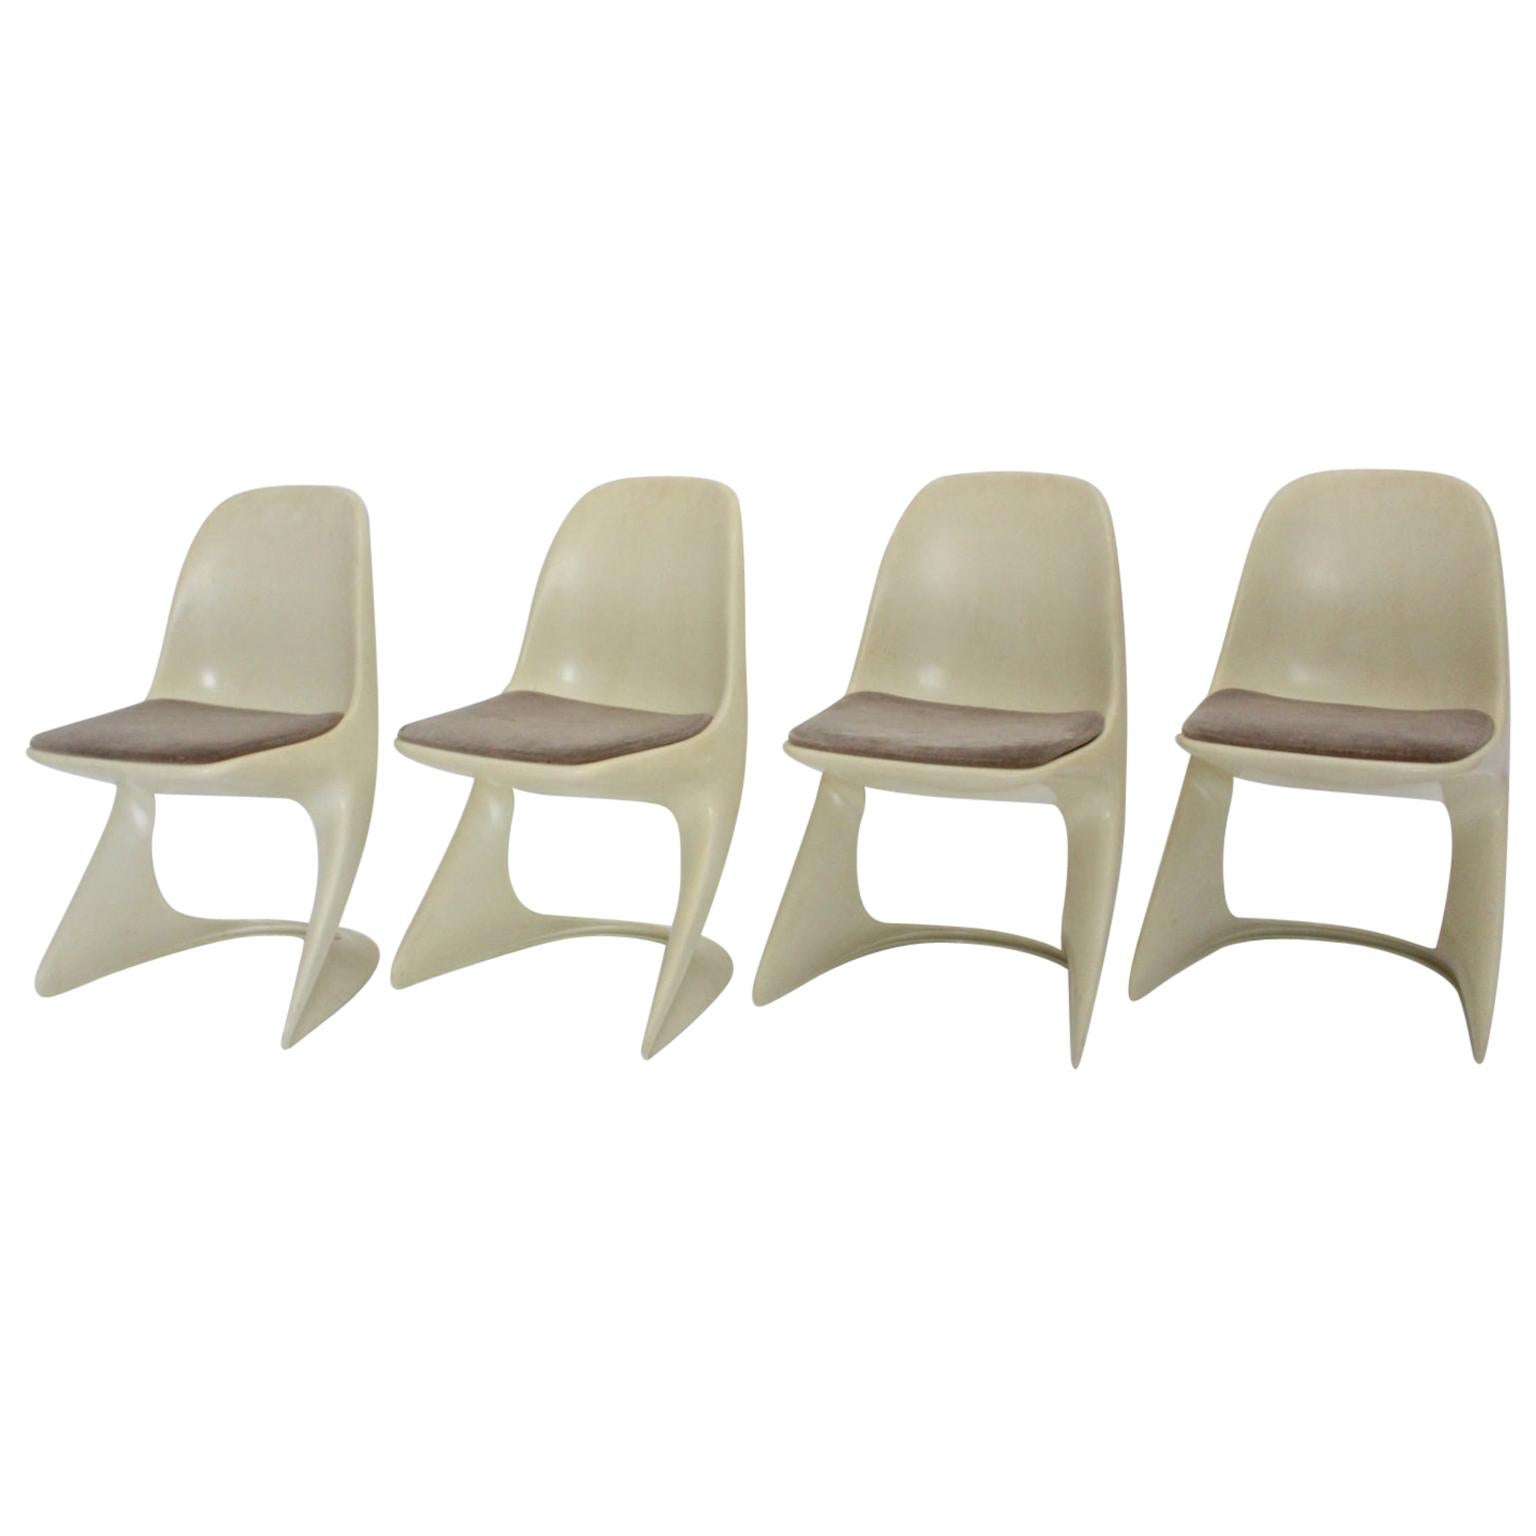 Space Age Four White Vintage Plastic Dining Chairs Alexander Begge, 1971